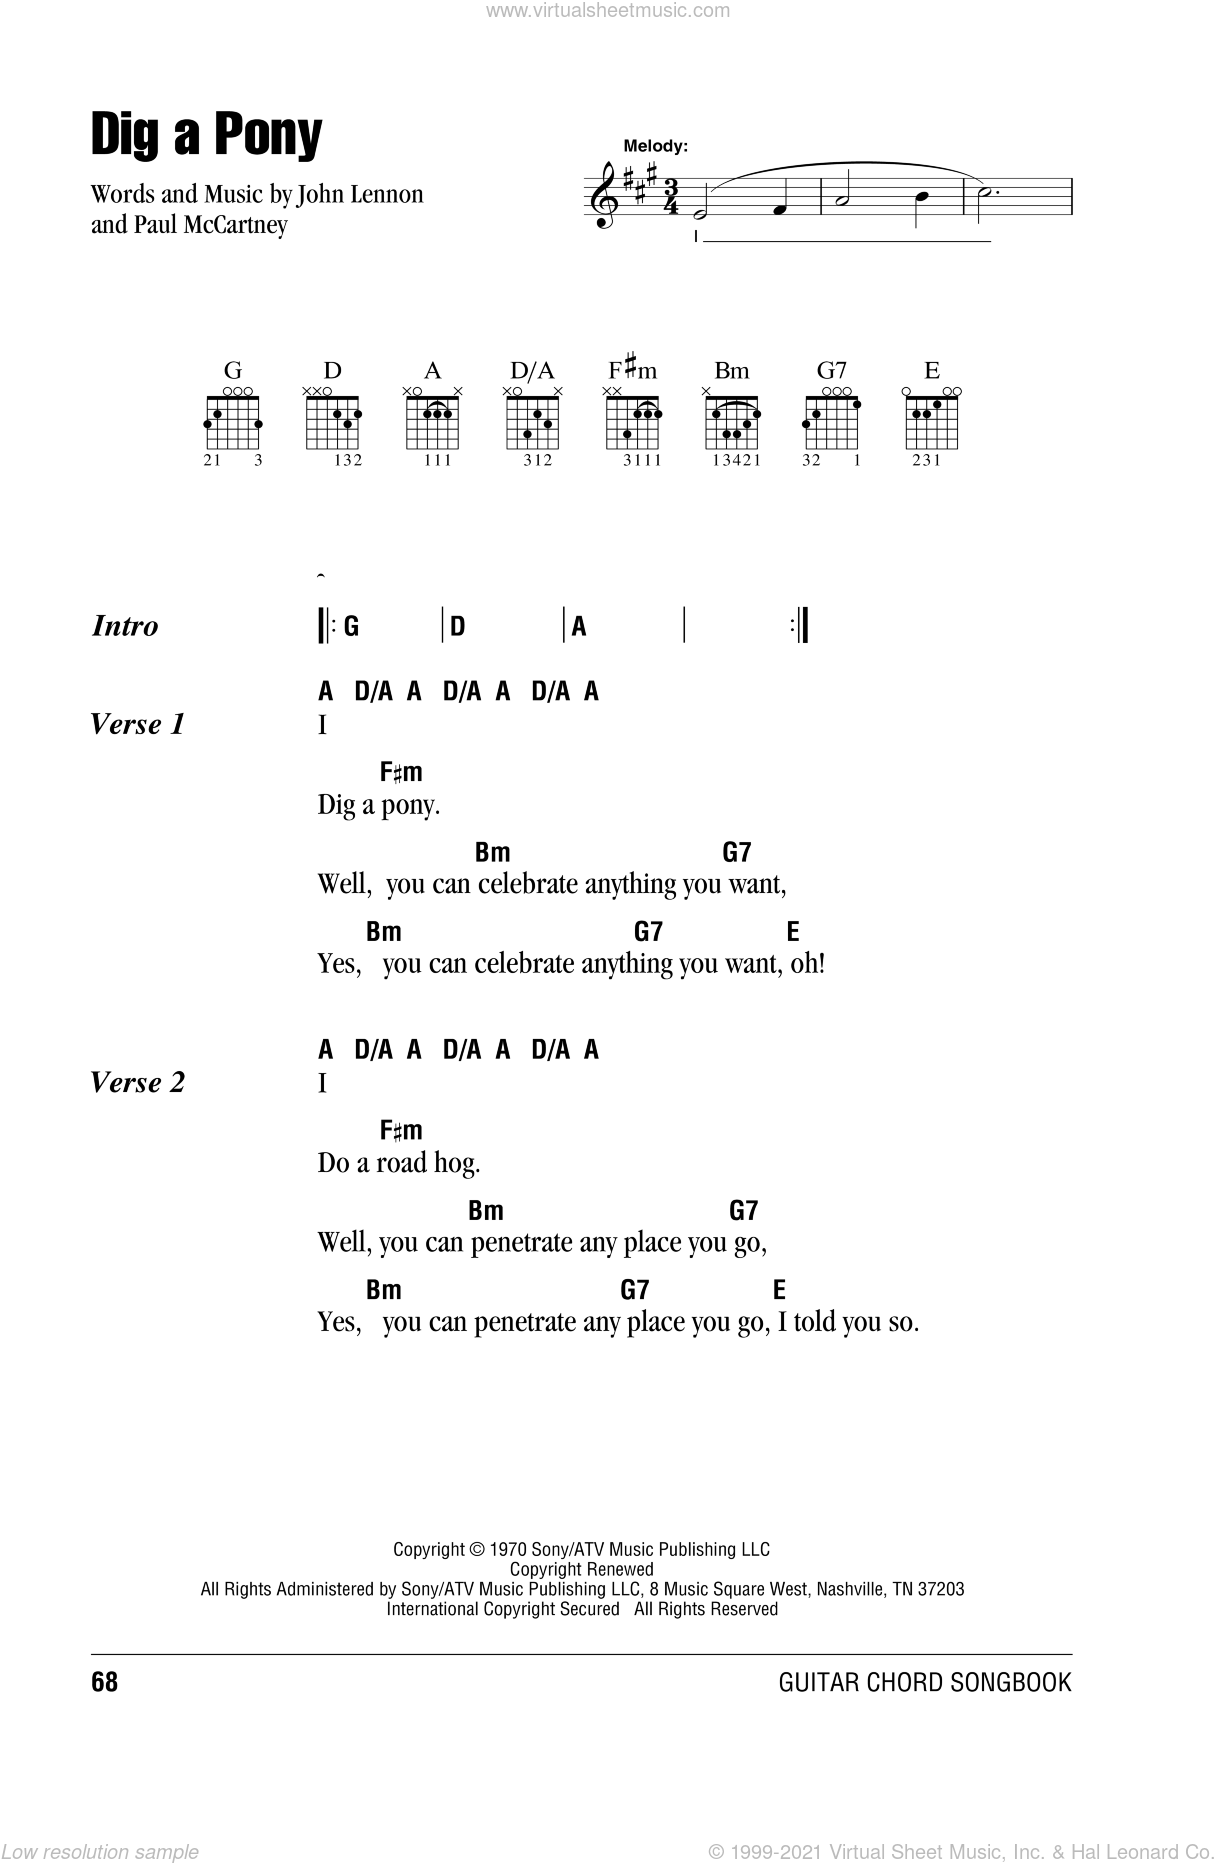 Dig A Pony sheet music for guitar (chords) by Paul McCartney, The Beatles and John Lennon. Score Image Preview.